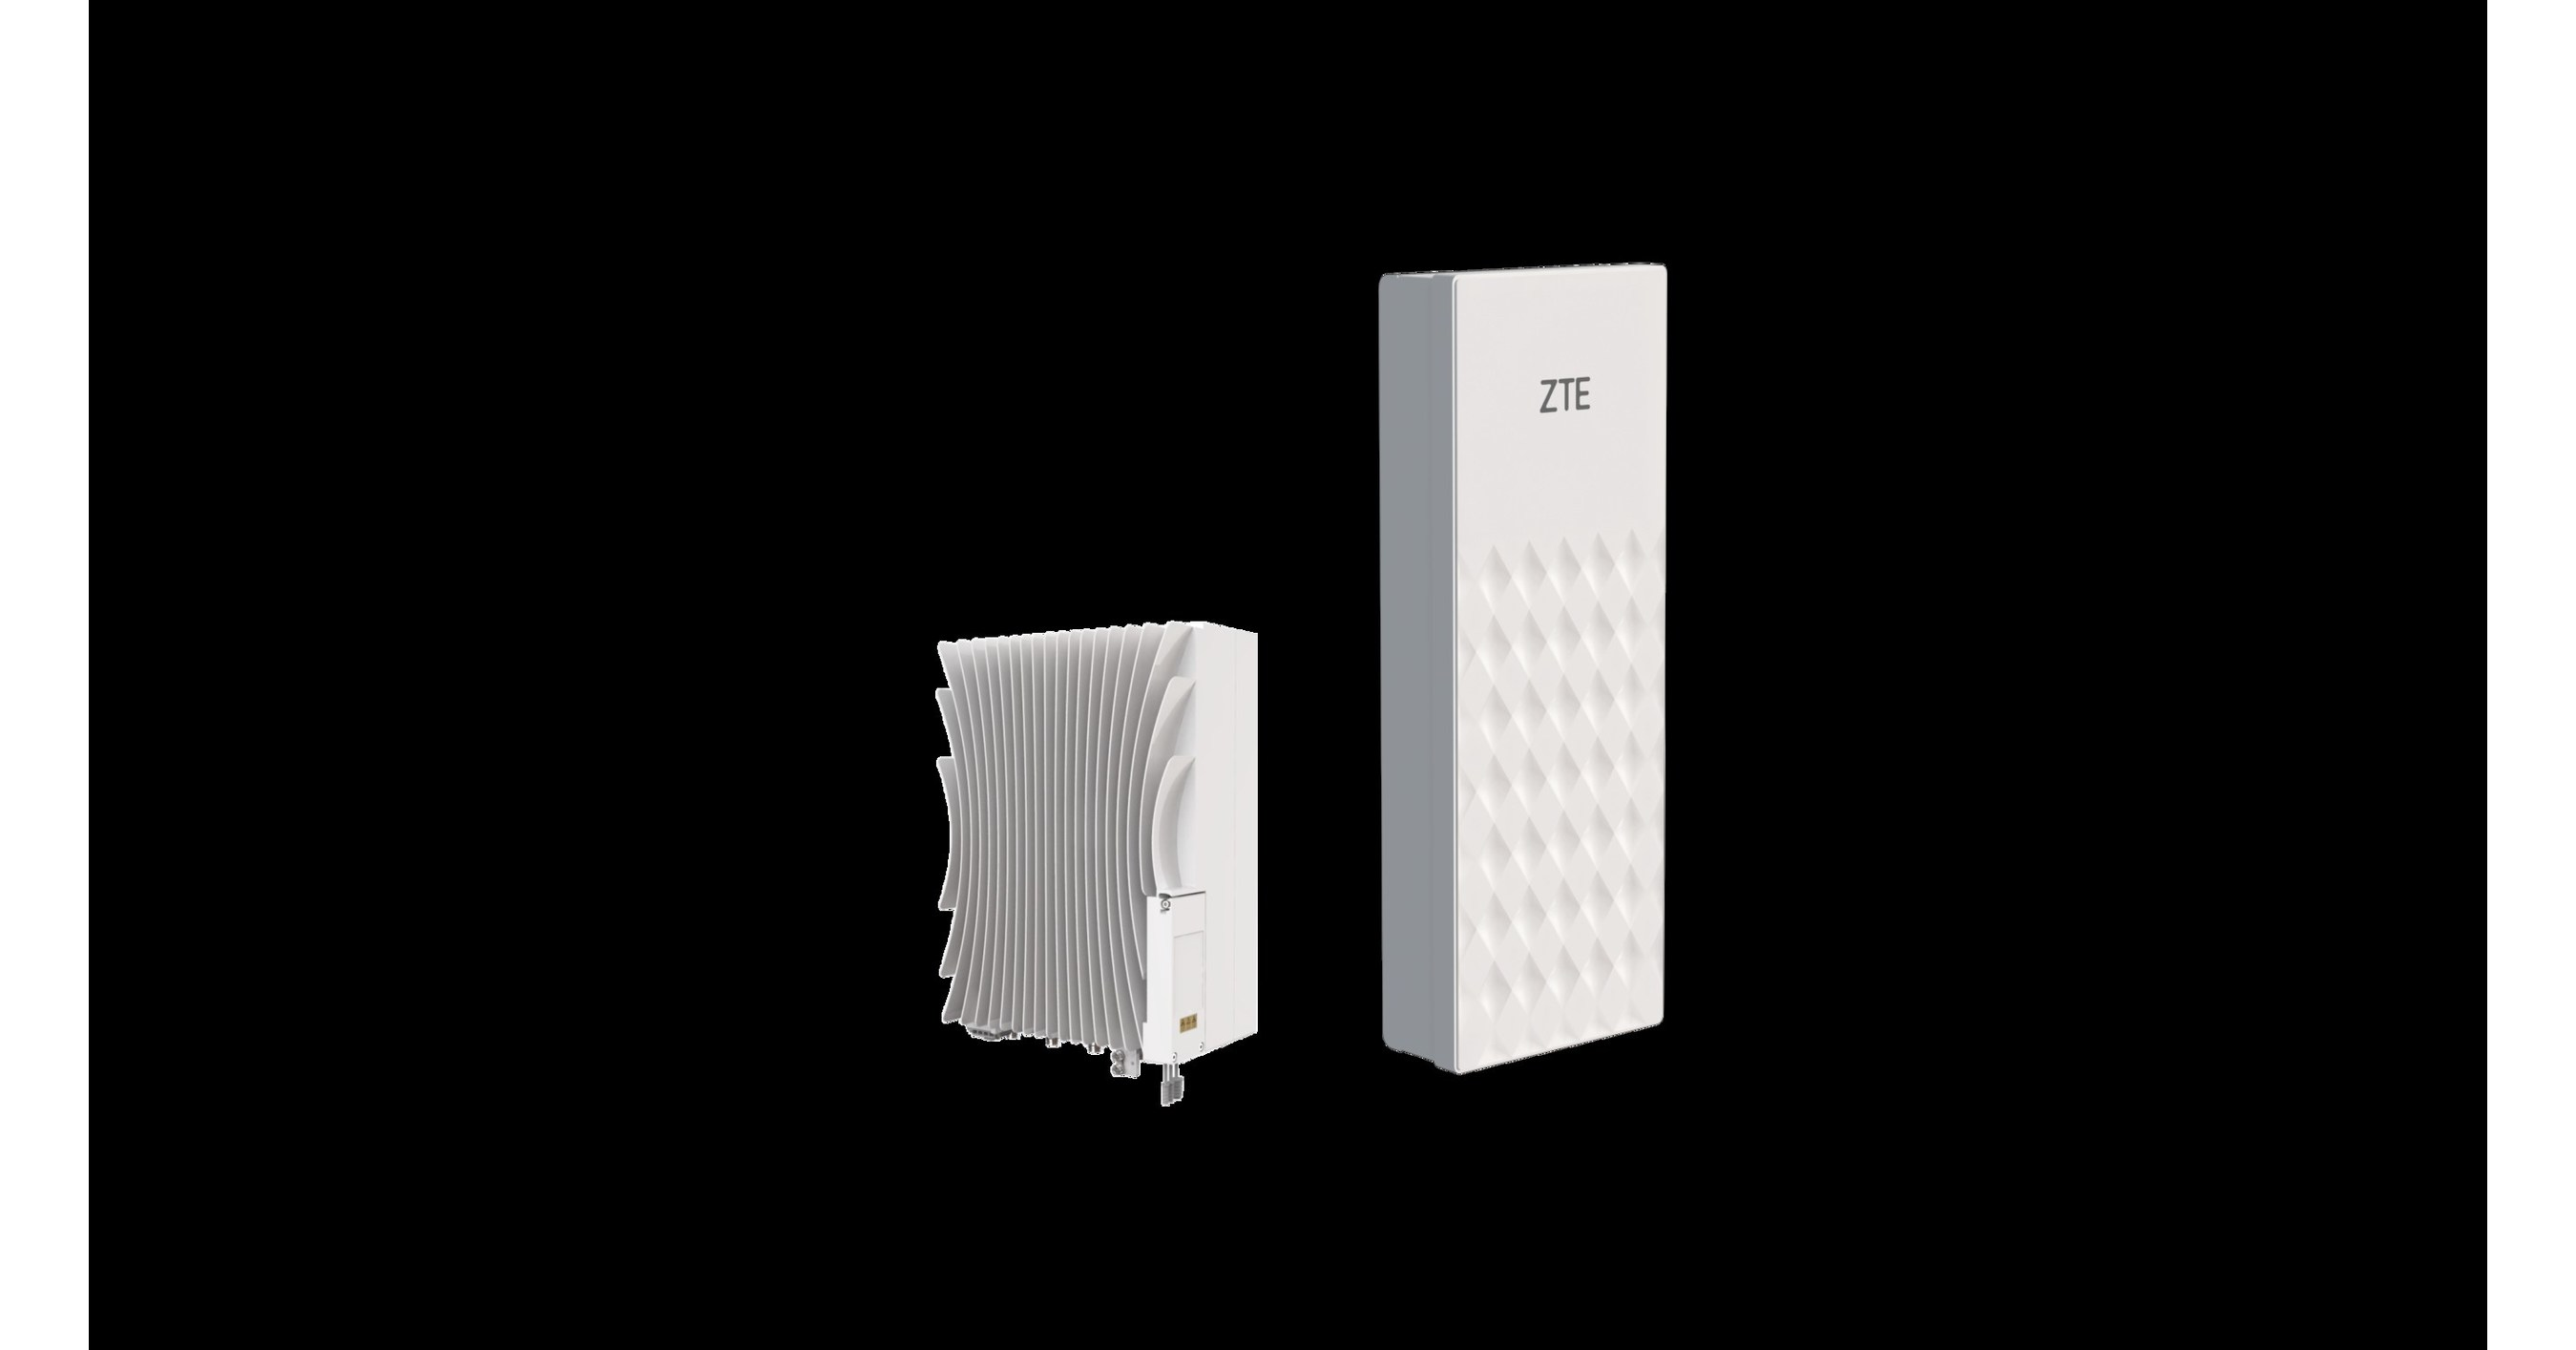 ZTE Showcases the Industry's Highest Power Tri-band UBR and